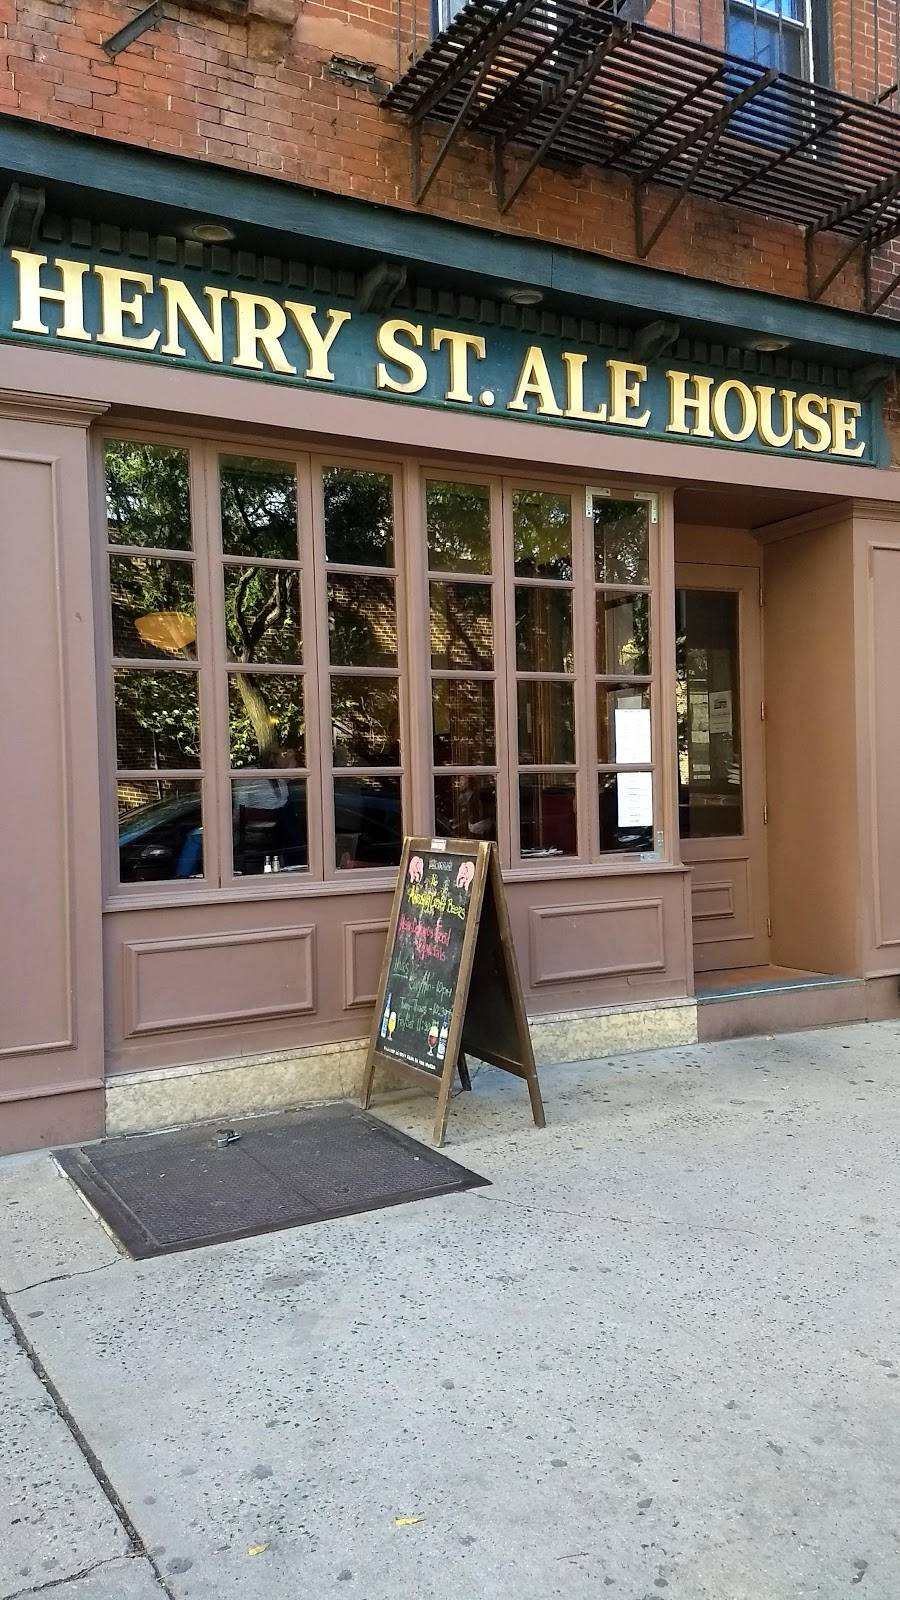 Henry Street Ale House | restaurant | 62 Henry St, Brooklyn, NY 11201, USA | 7185224801 OR +1 718-522-4801